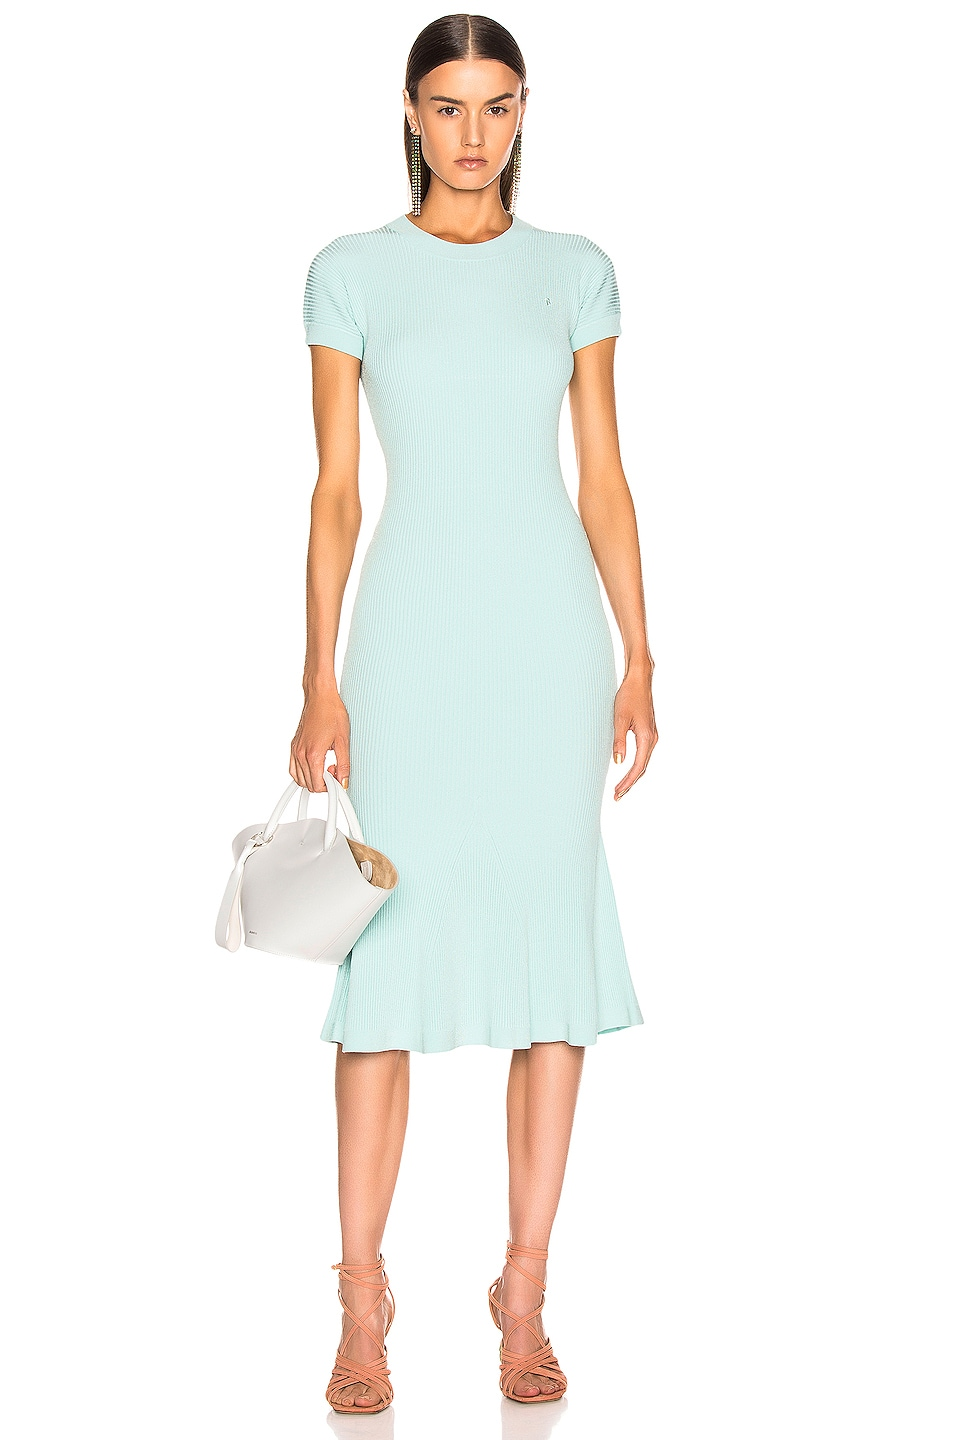 Image 1 of Brandon Maxwell Shortsleeve Knit Fit & Flare Dress in Aqua Blue